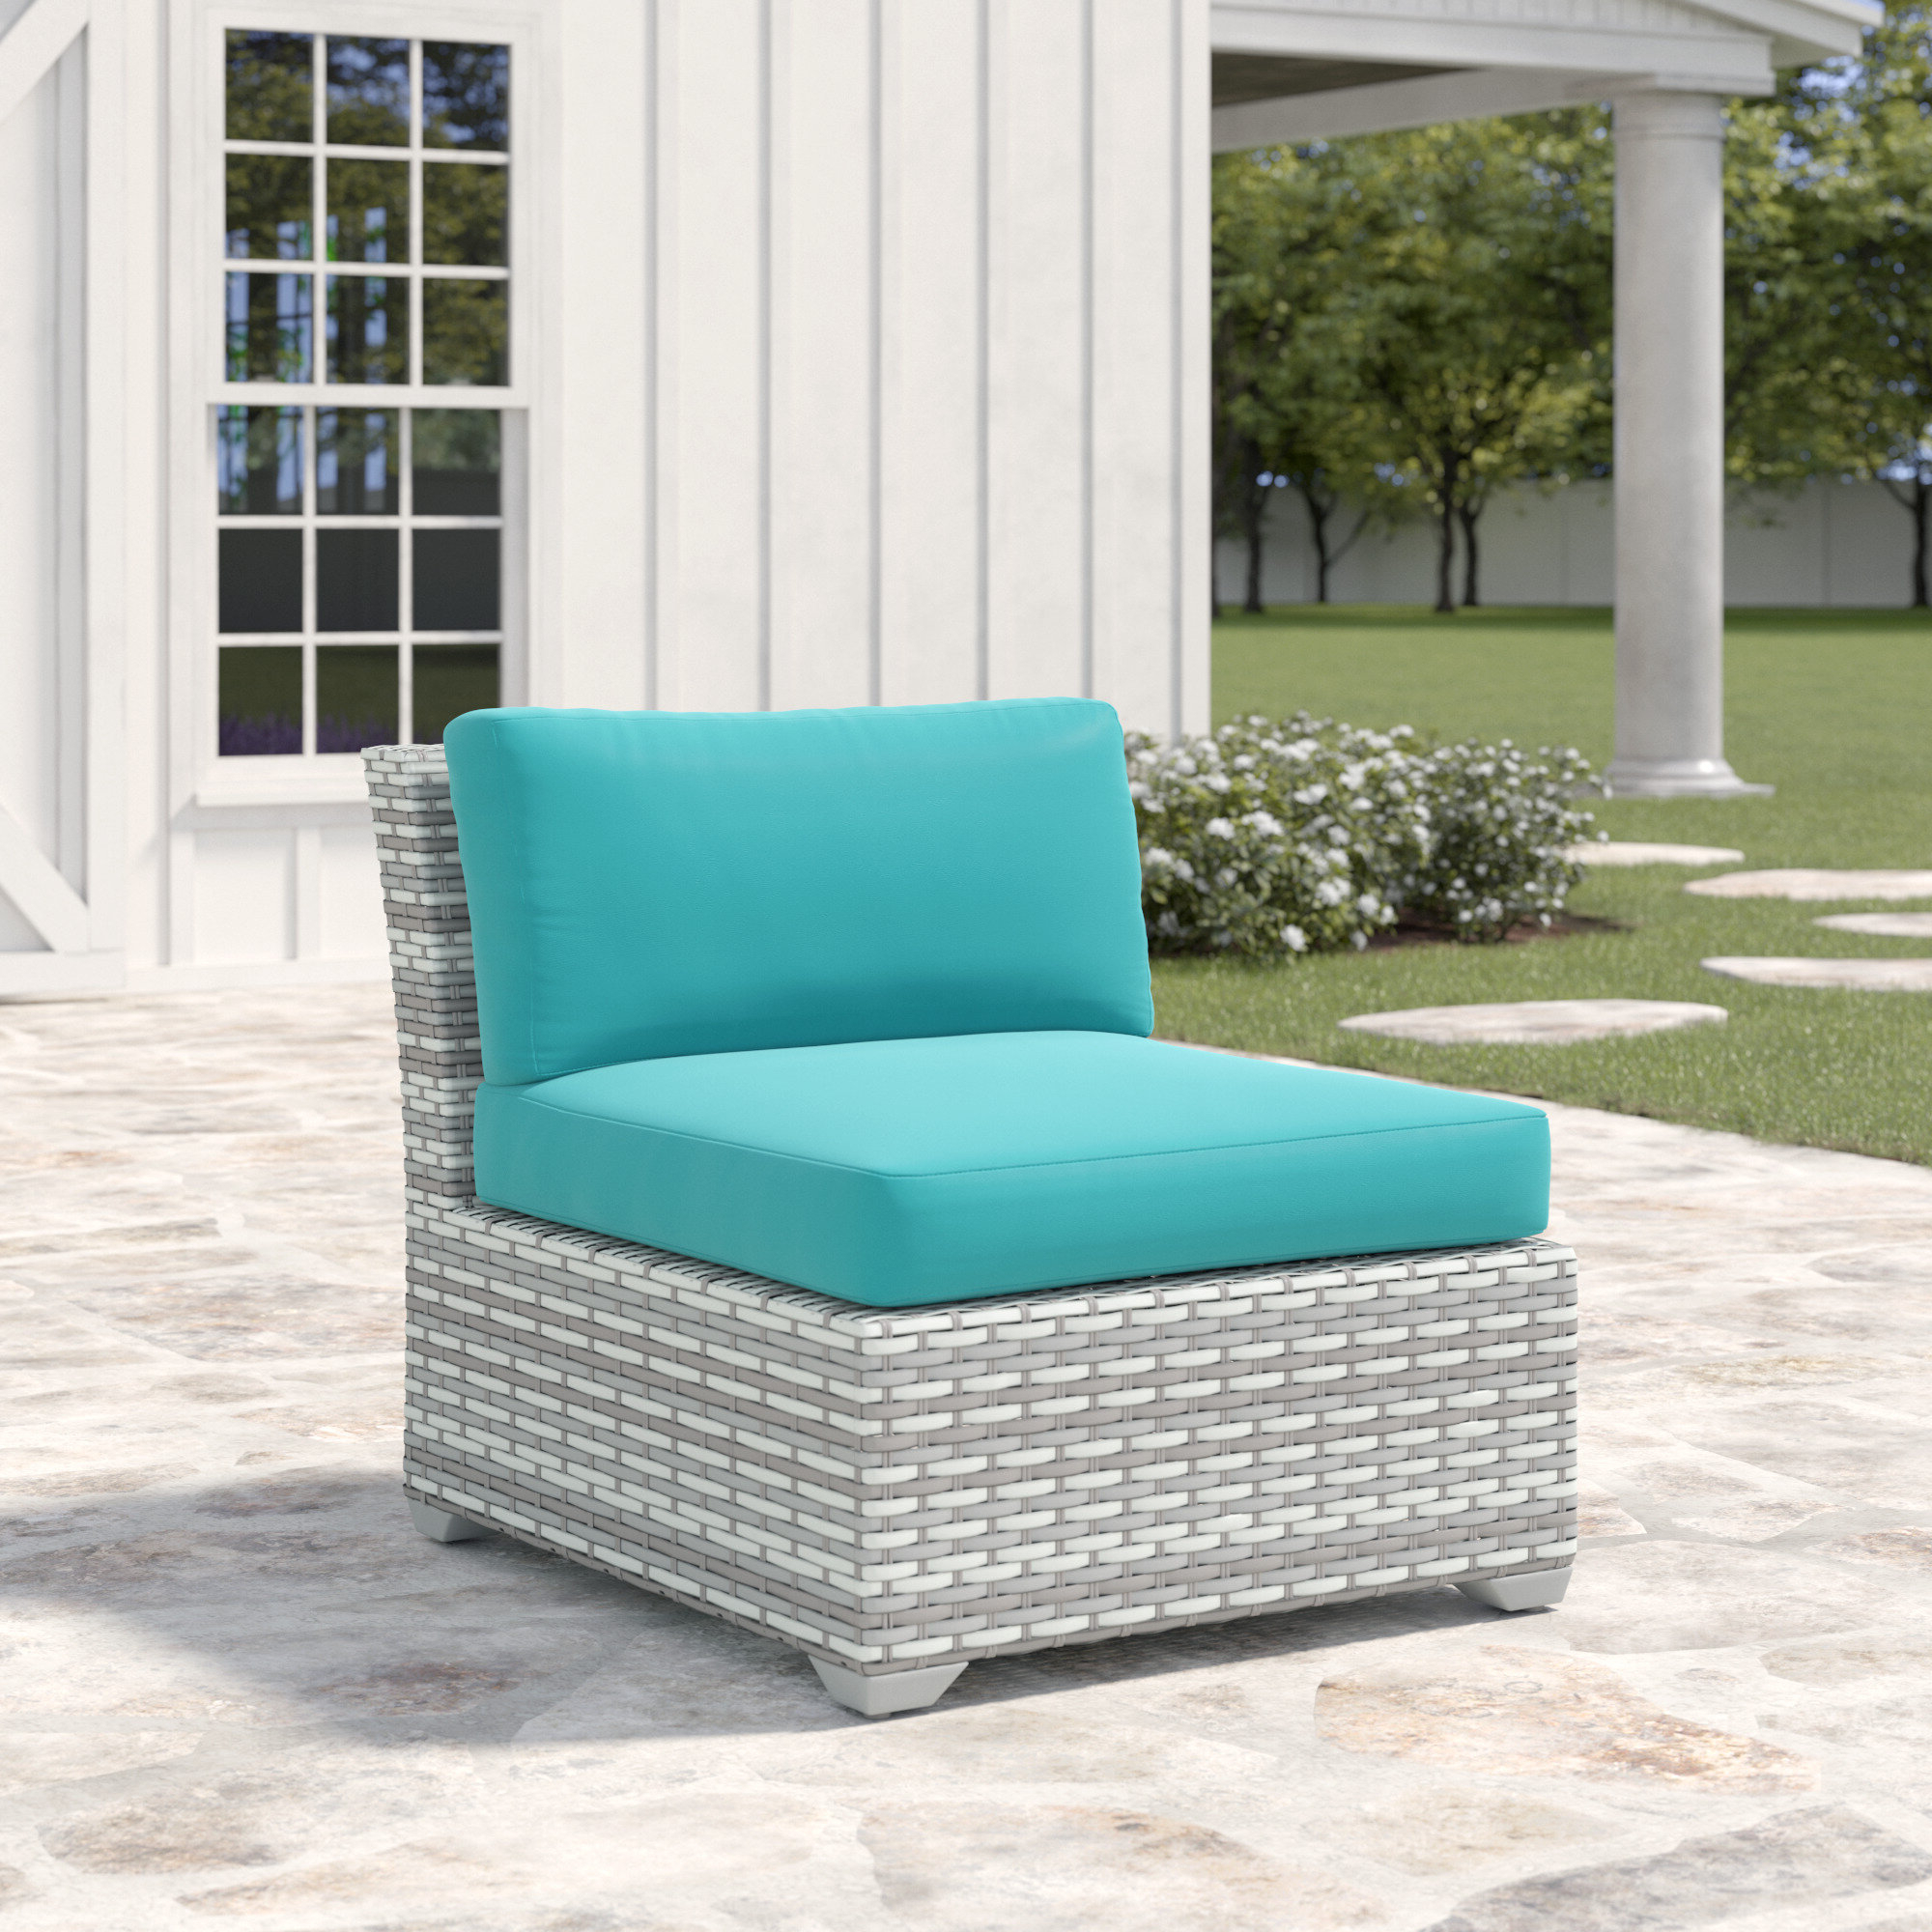 Falmouth Loveseats With Cushions For Most Current Falmouth Armless Patio Chair With Cushions (View 19 of 20)